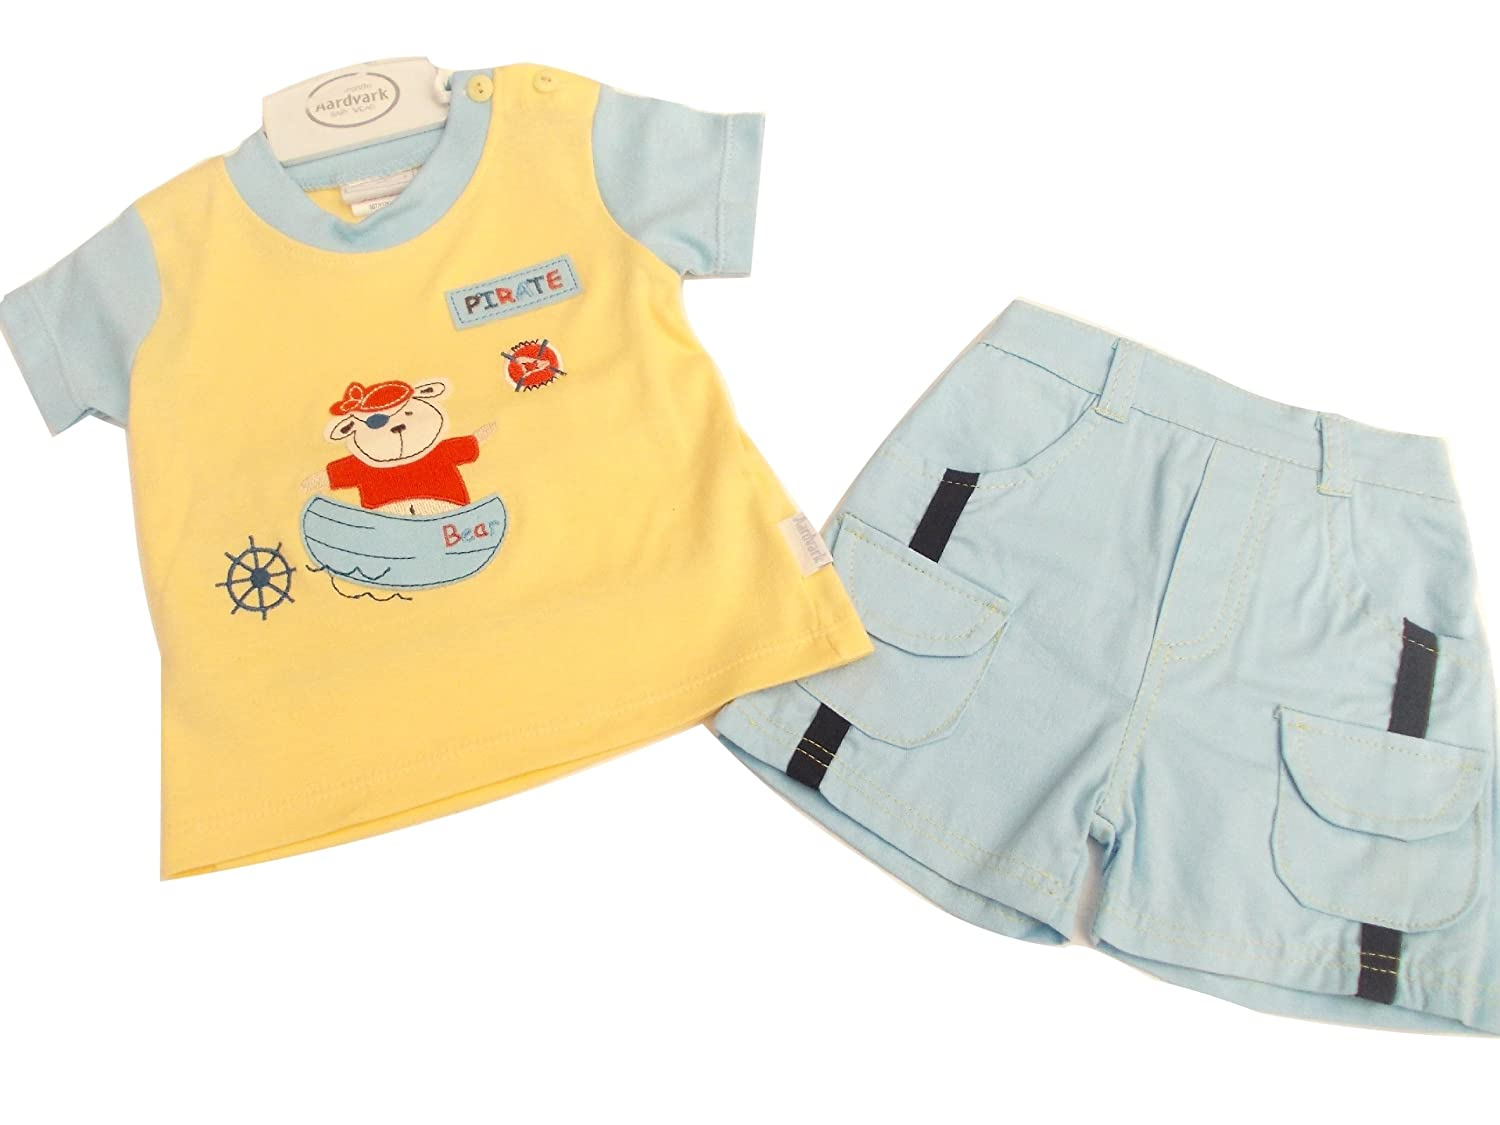 Cars 0-3 months BNWT NEXT Baby Boys Outfit Teddy